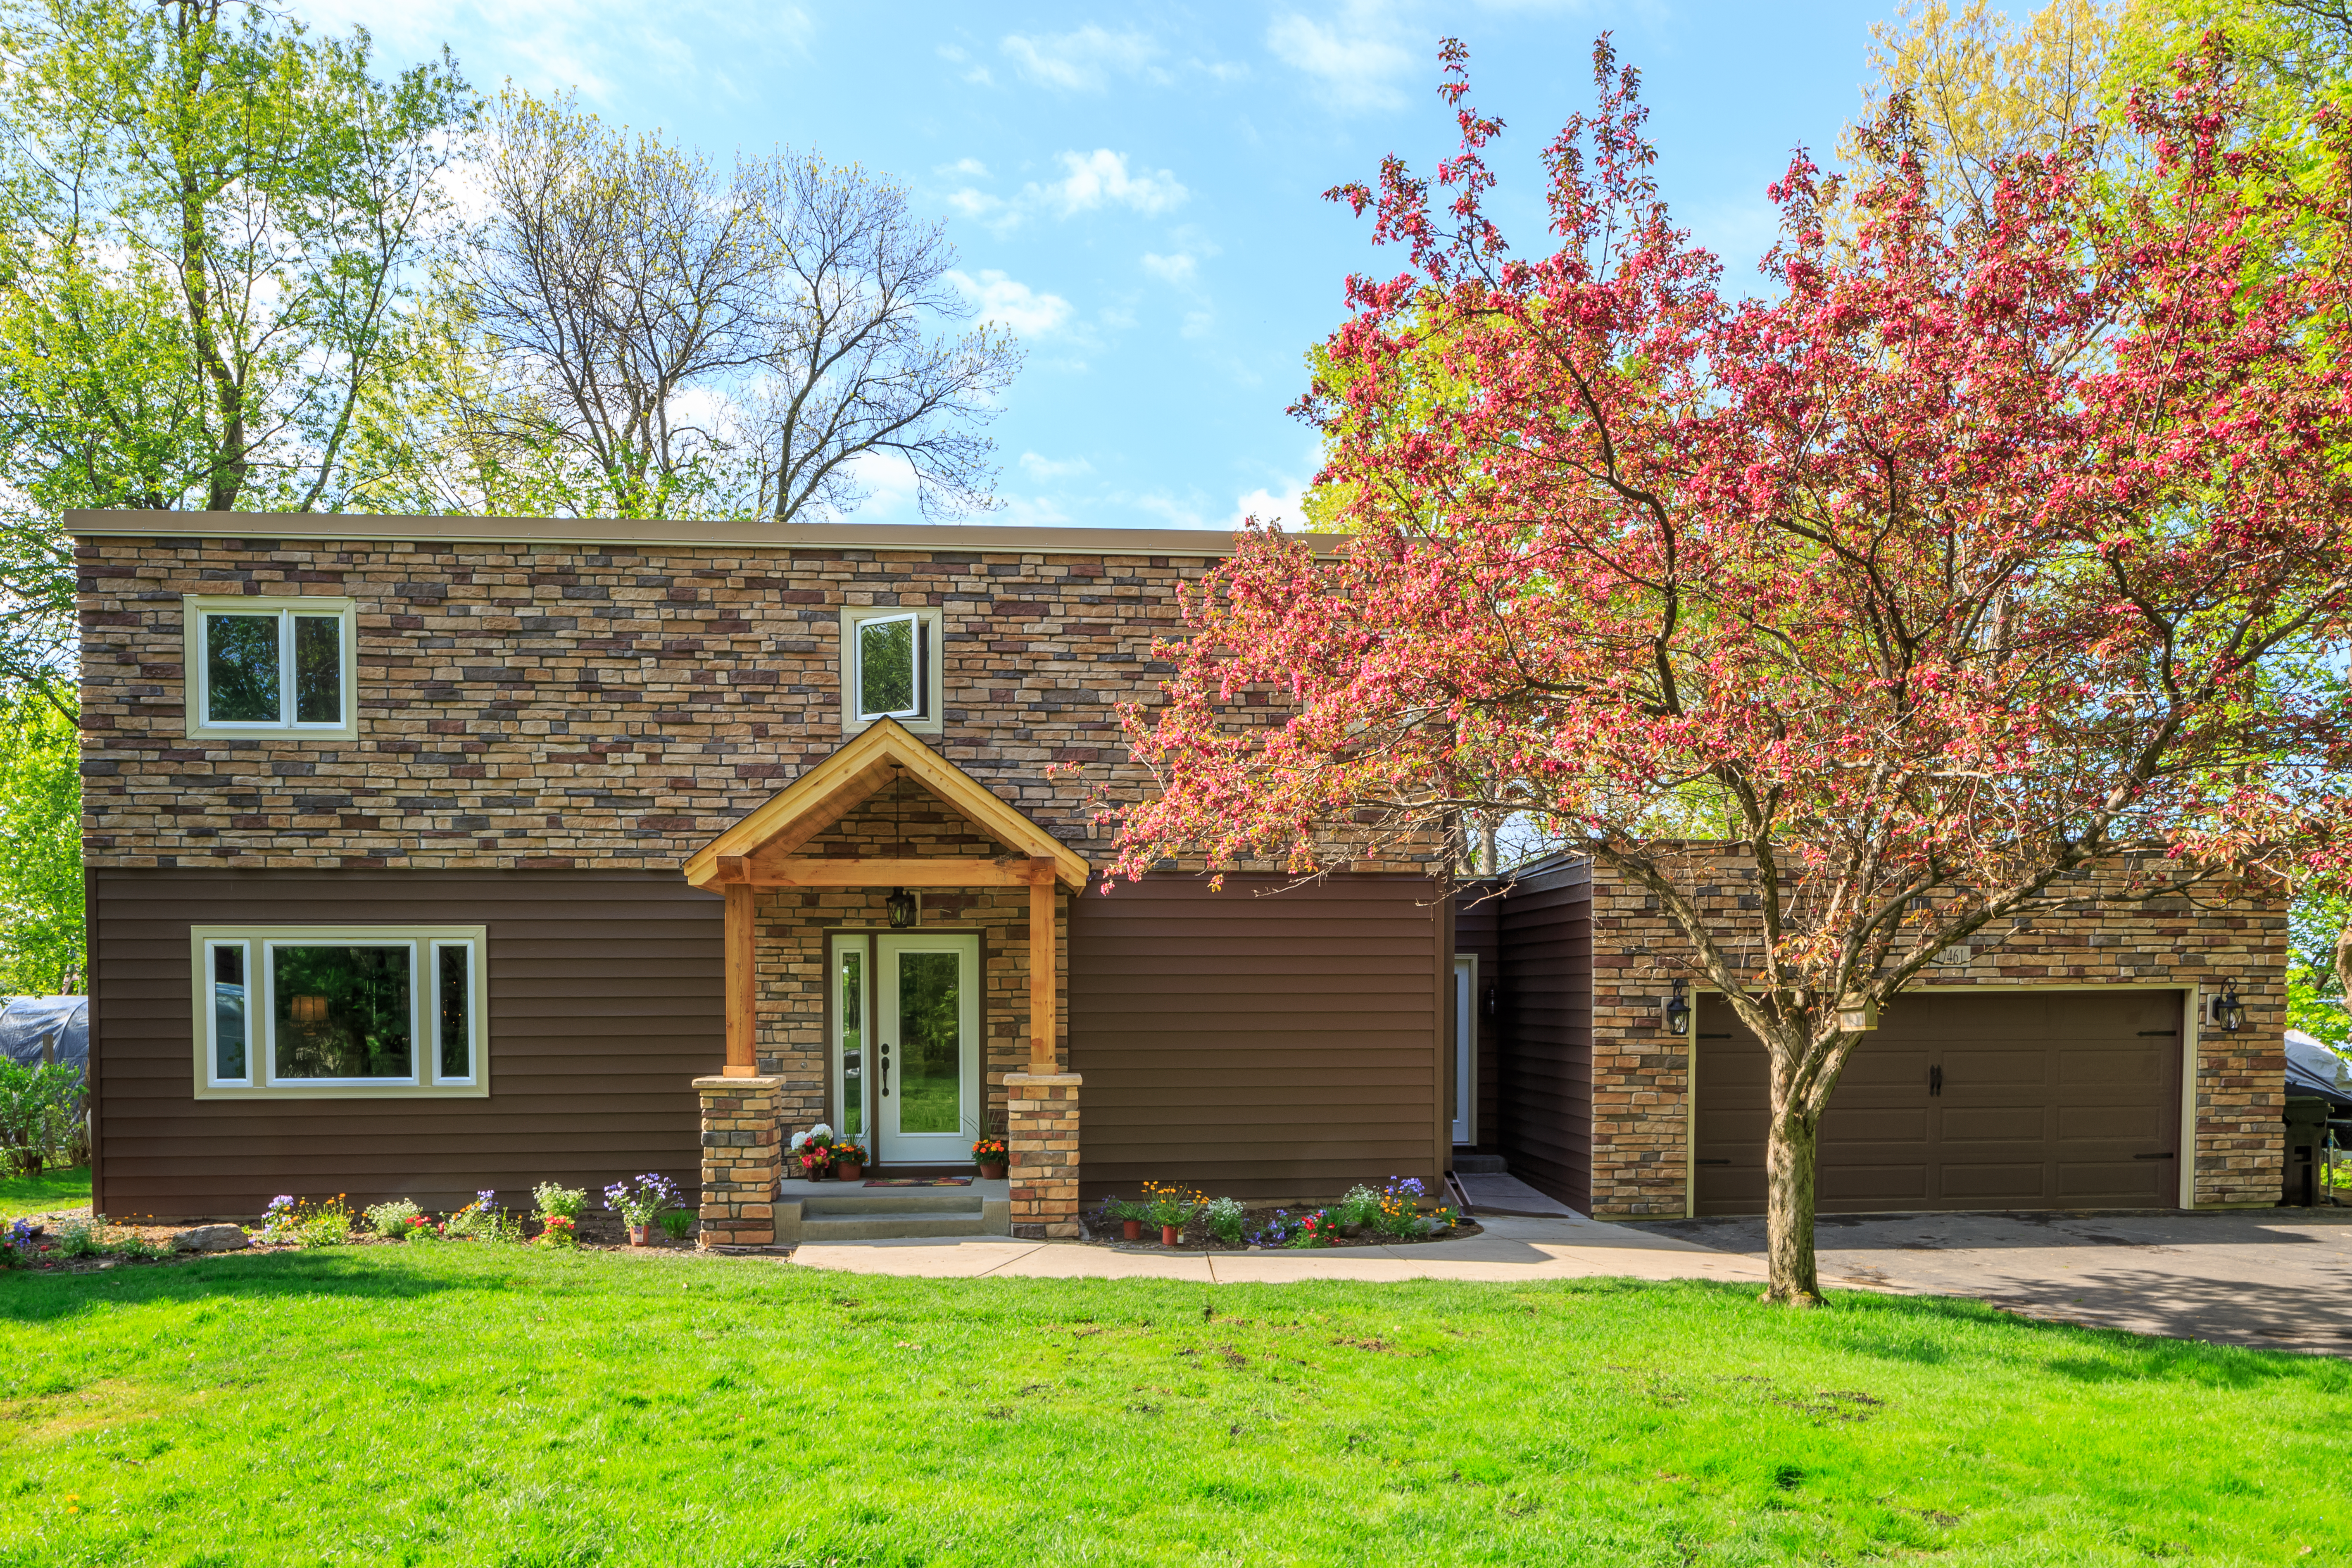 remodeling Archives - Spotless & Seamless Exteriors Minnesota on